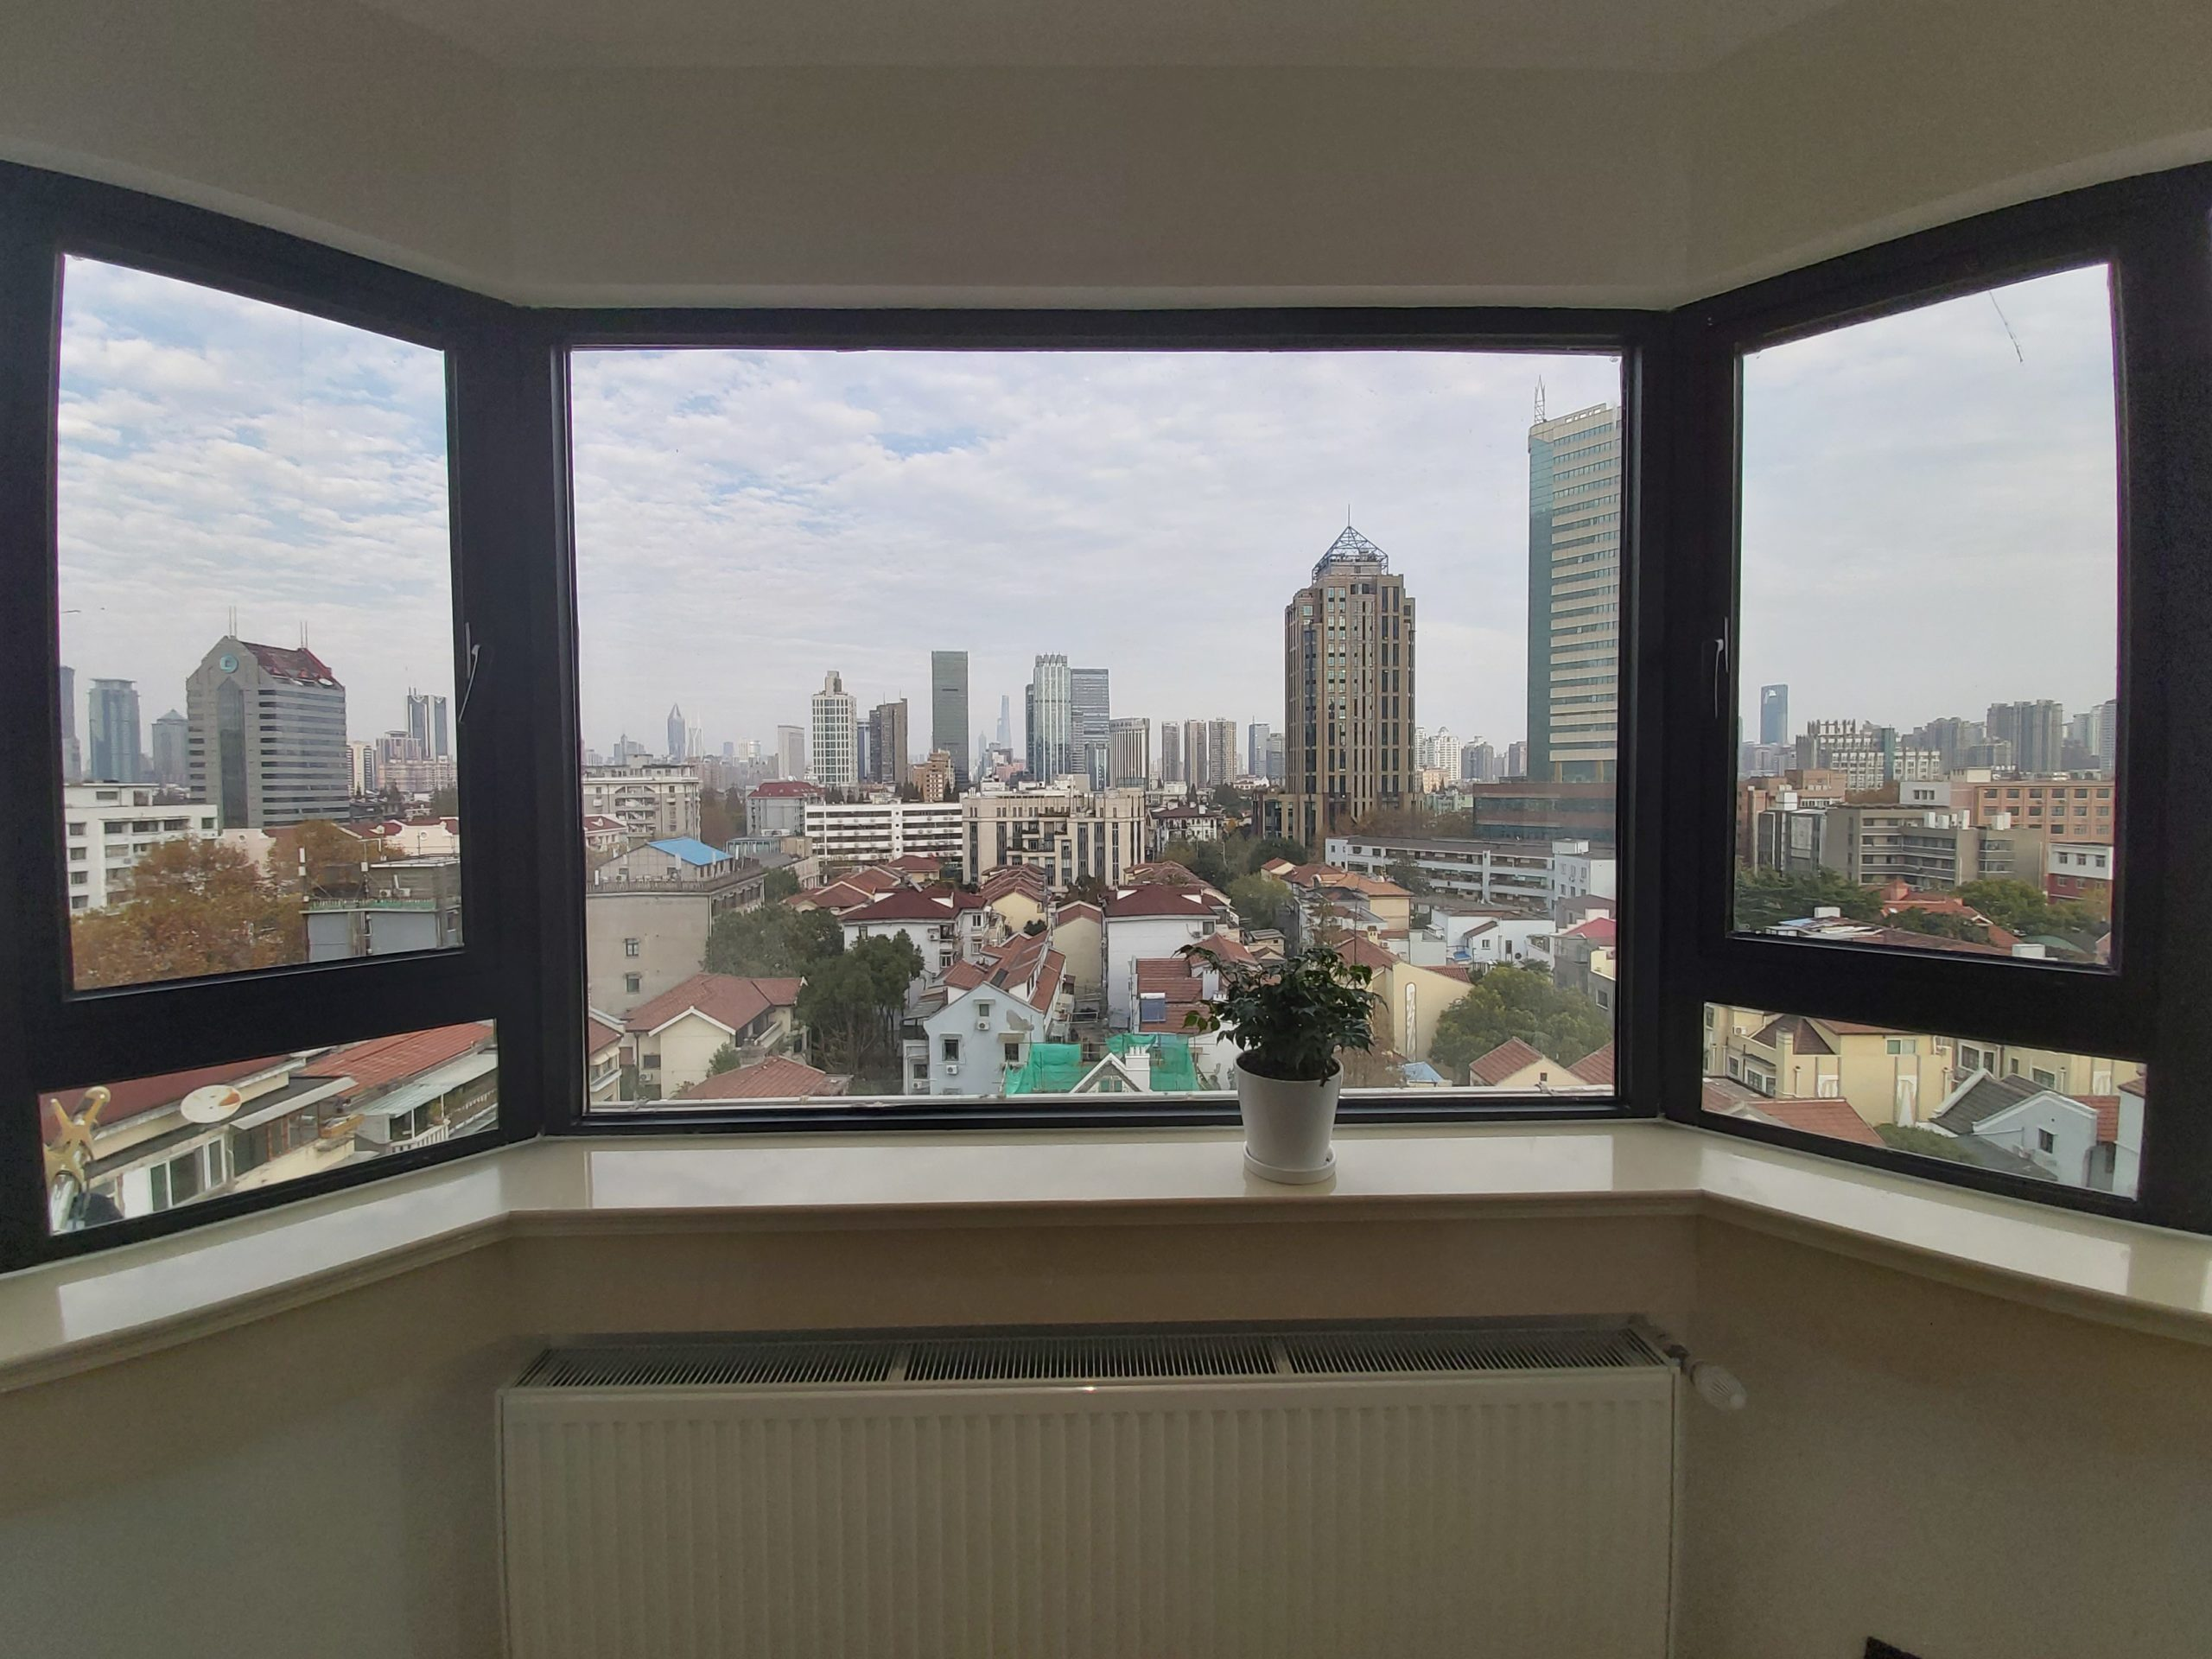 1br with elevator near Changshu Rd L7/1 with Super nice open view